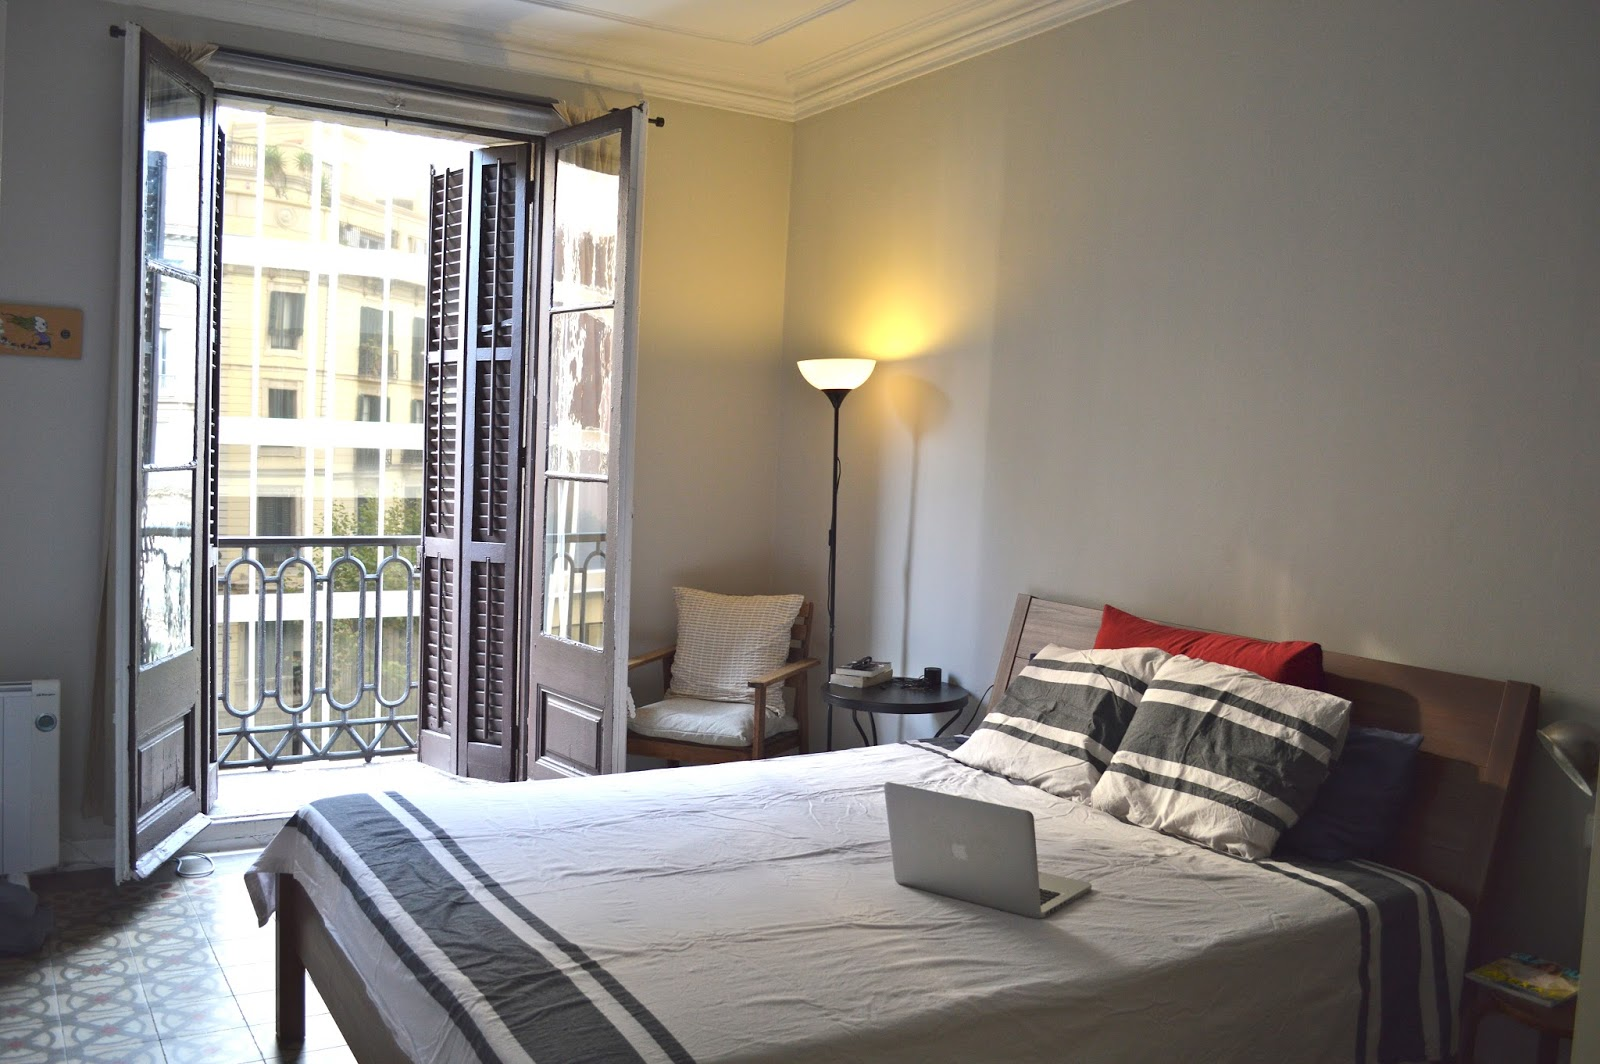 Simple simplistic bedroom with balcony in Airbnb apartment Barcelona